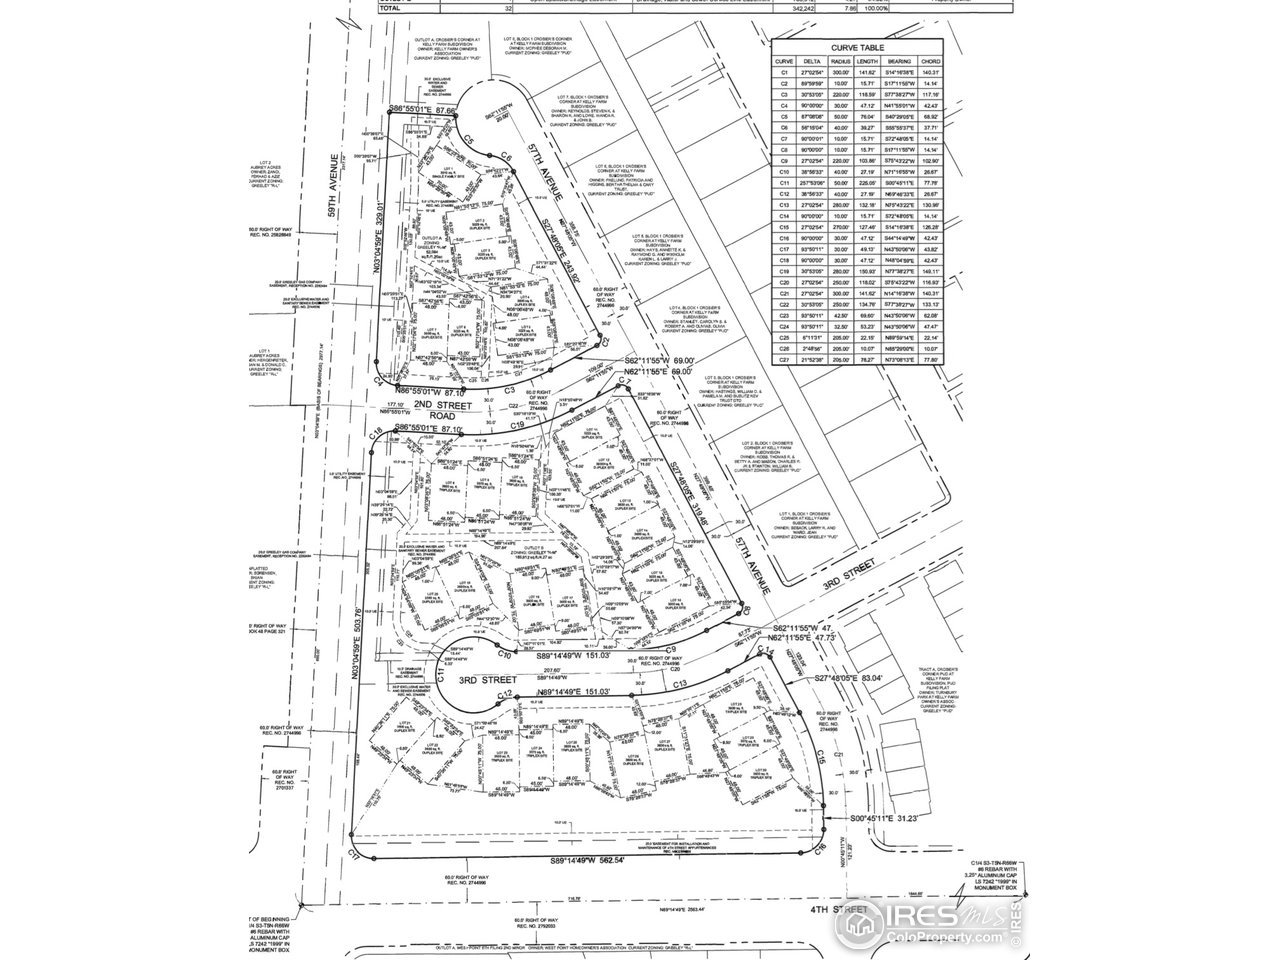 The site map for Cottages at Kelly Farm